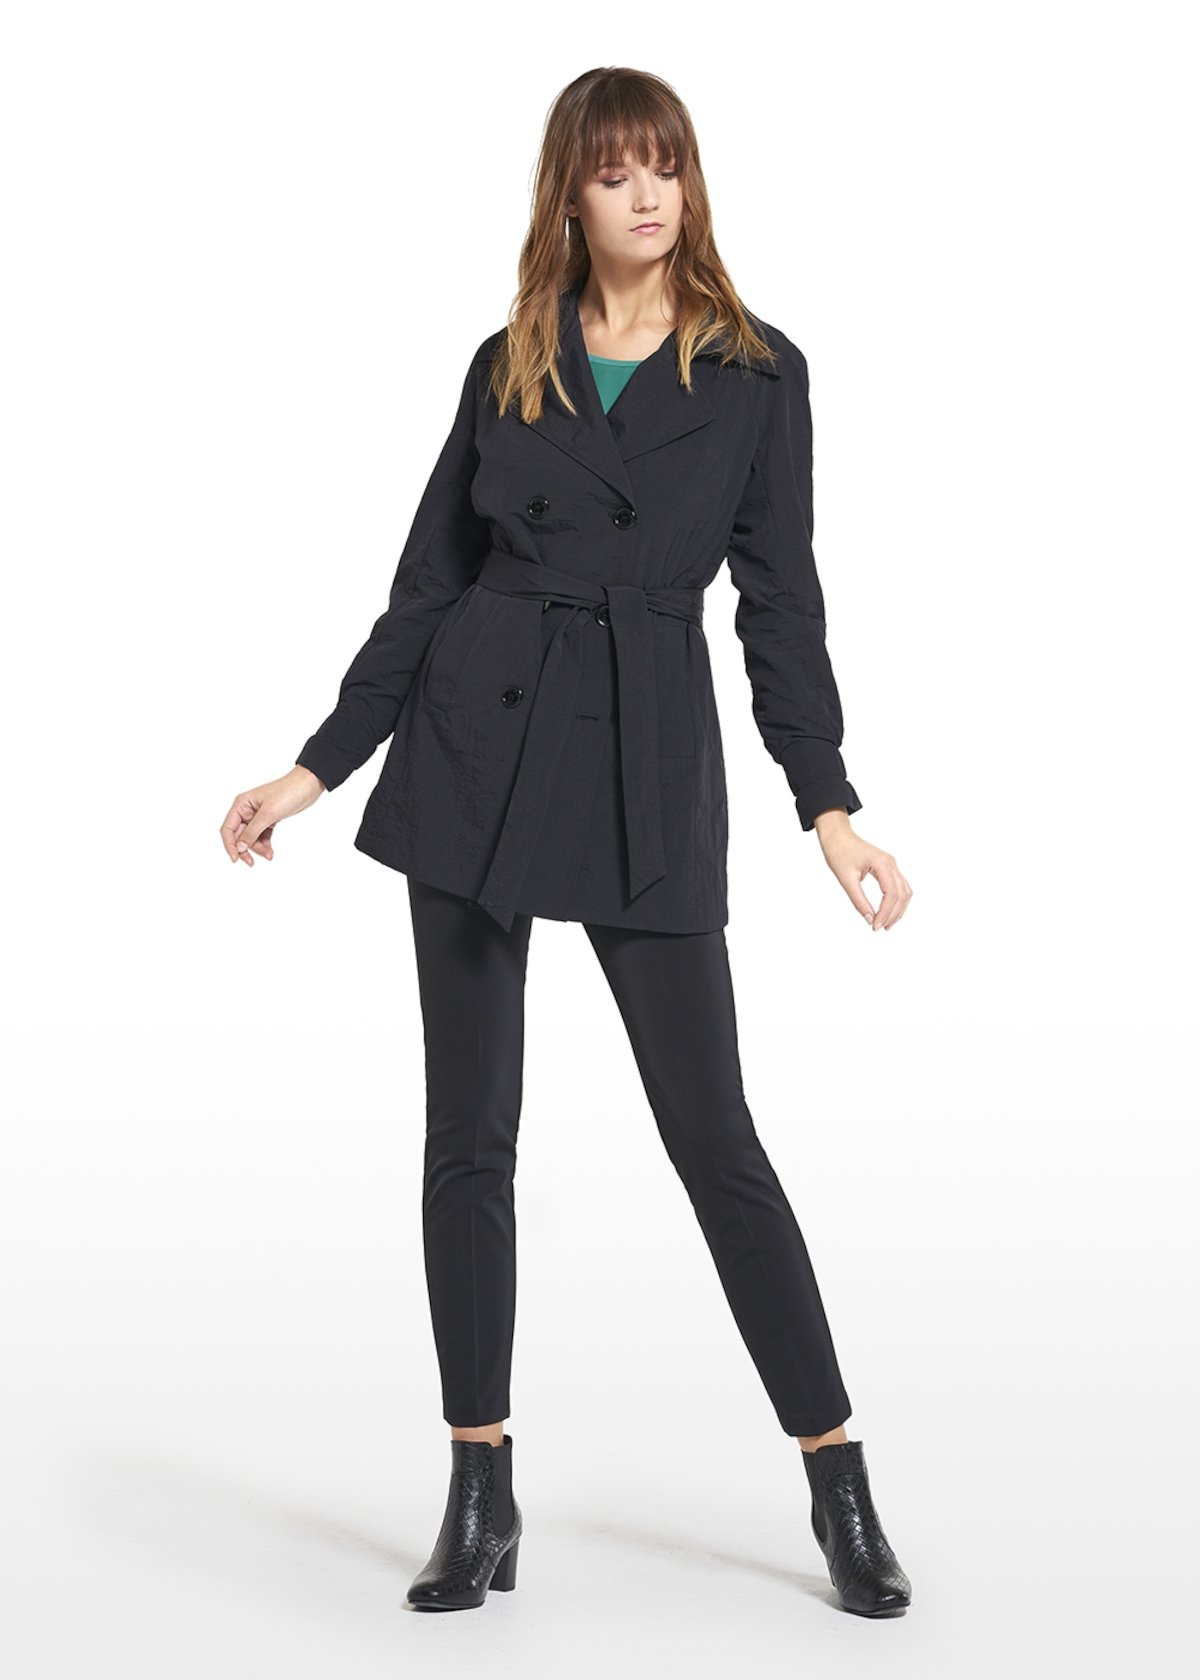 Trench Tulipano red passion - Black - Donna - Immagine categoria